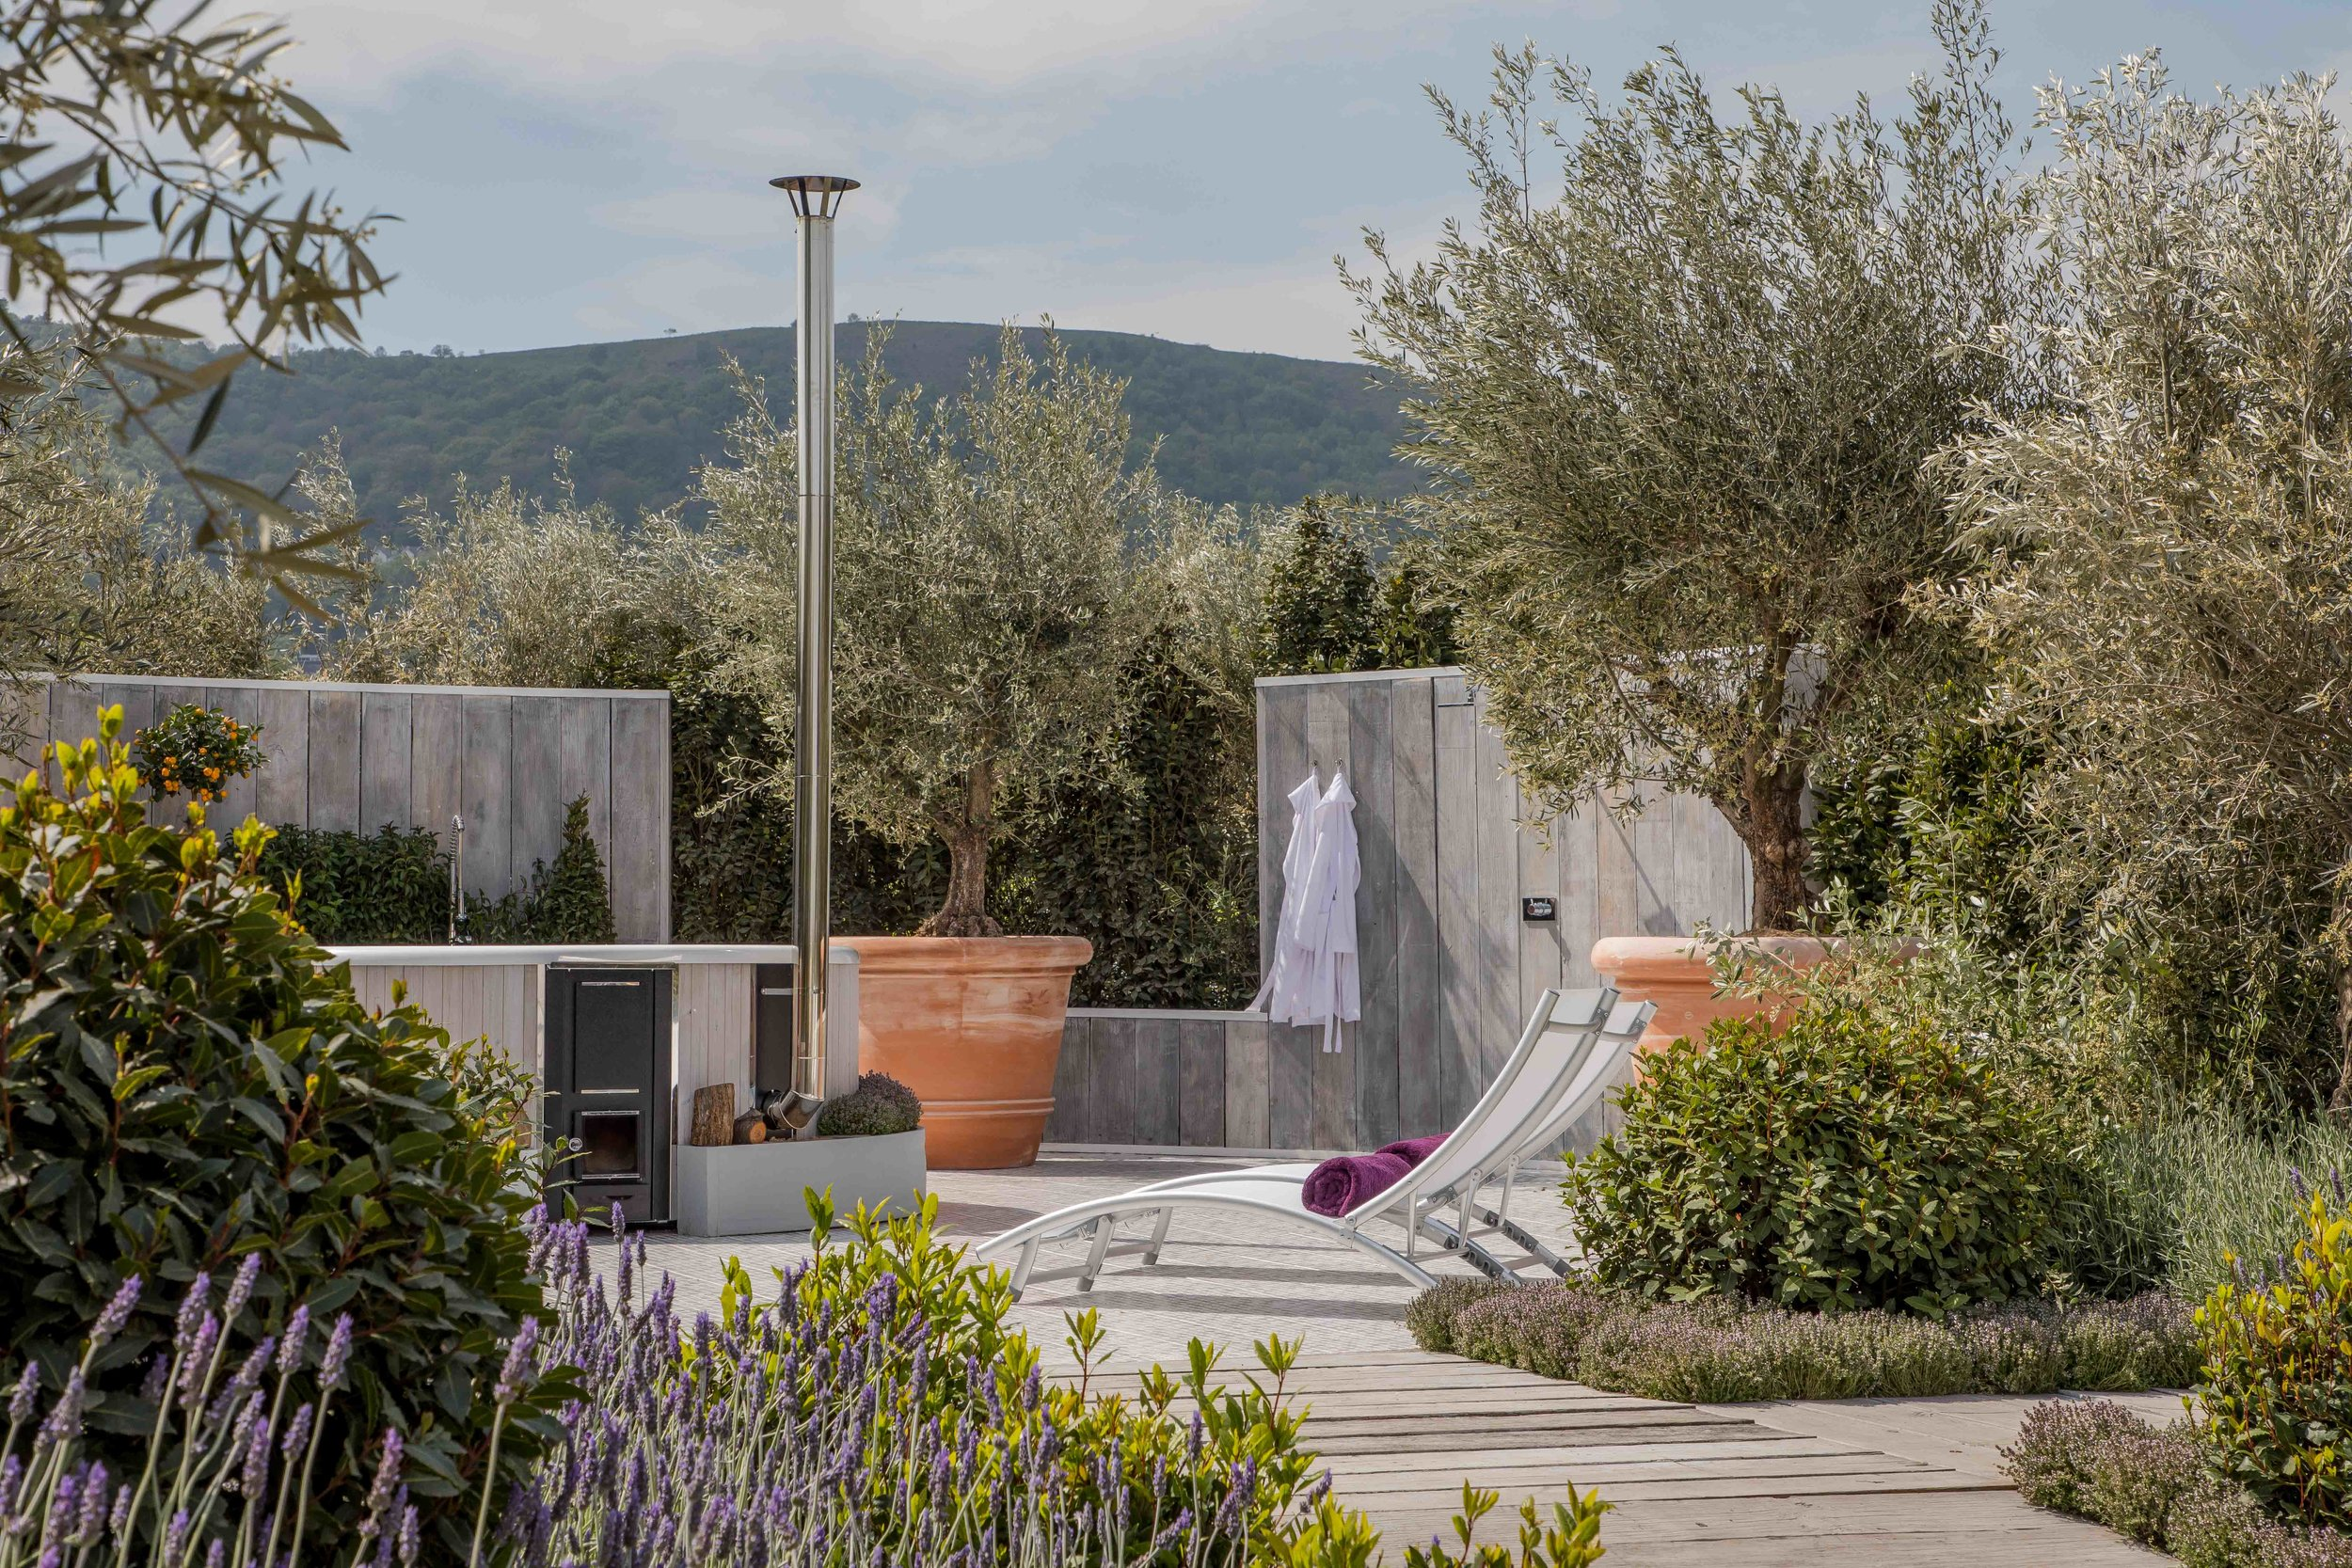 The Retreat Garden which won Silver Guilt for designer Villaggio Verde. I love how most of the main show gardens used the distant Malvern Hills to frame the garden.